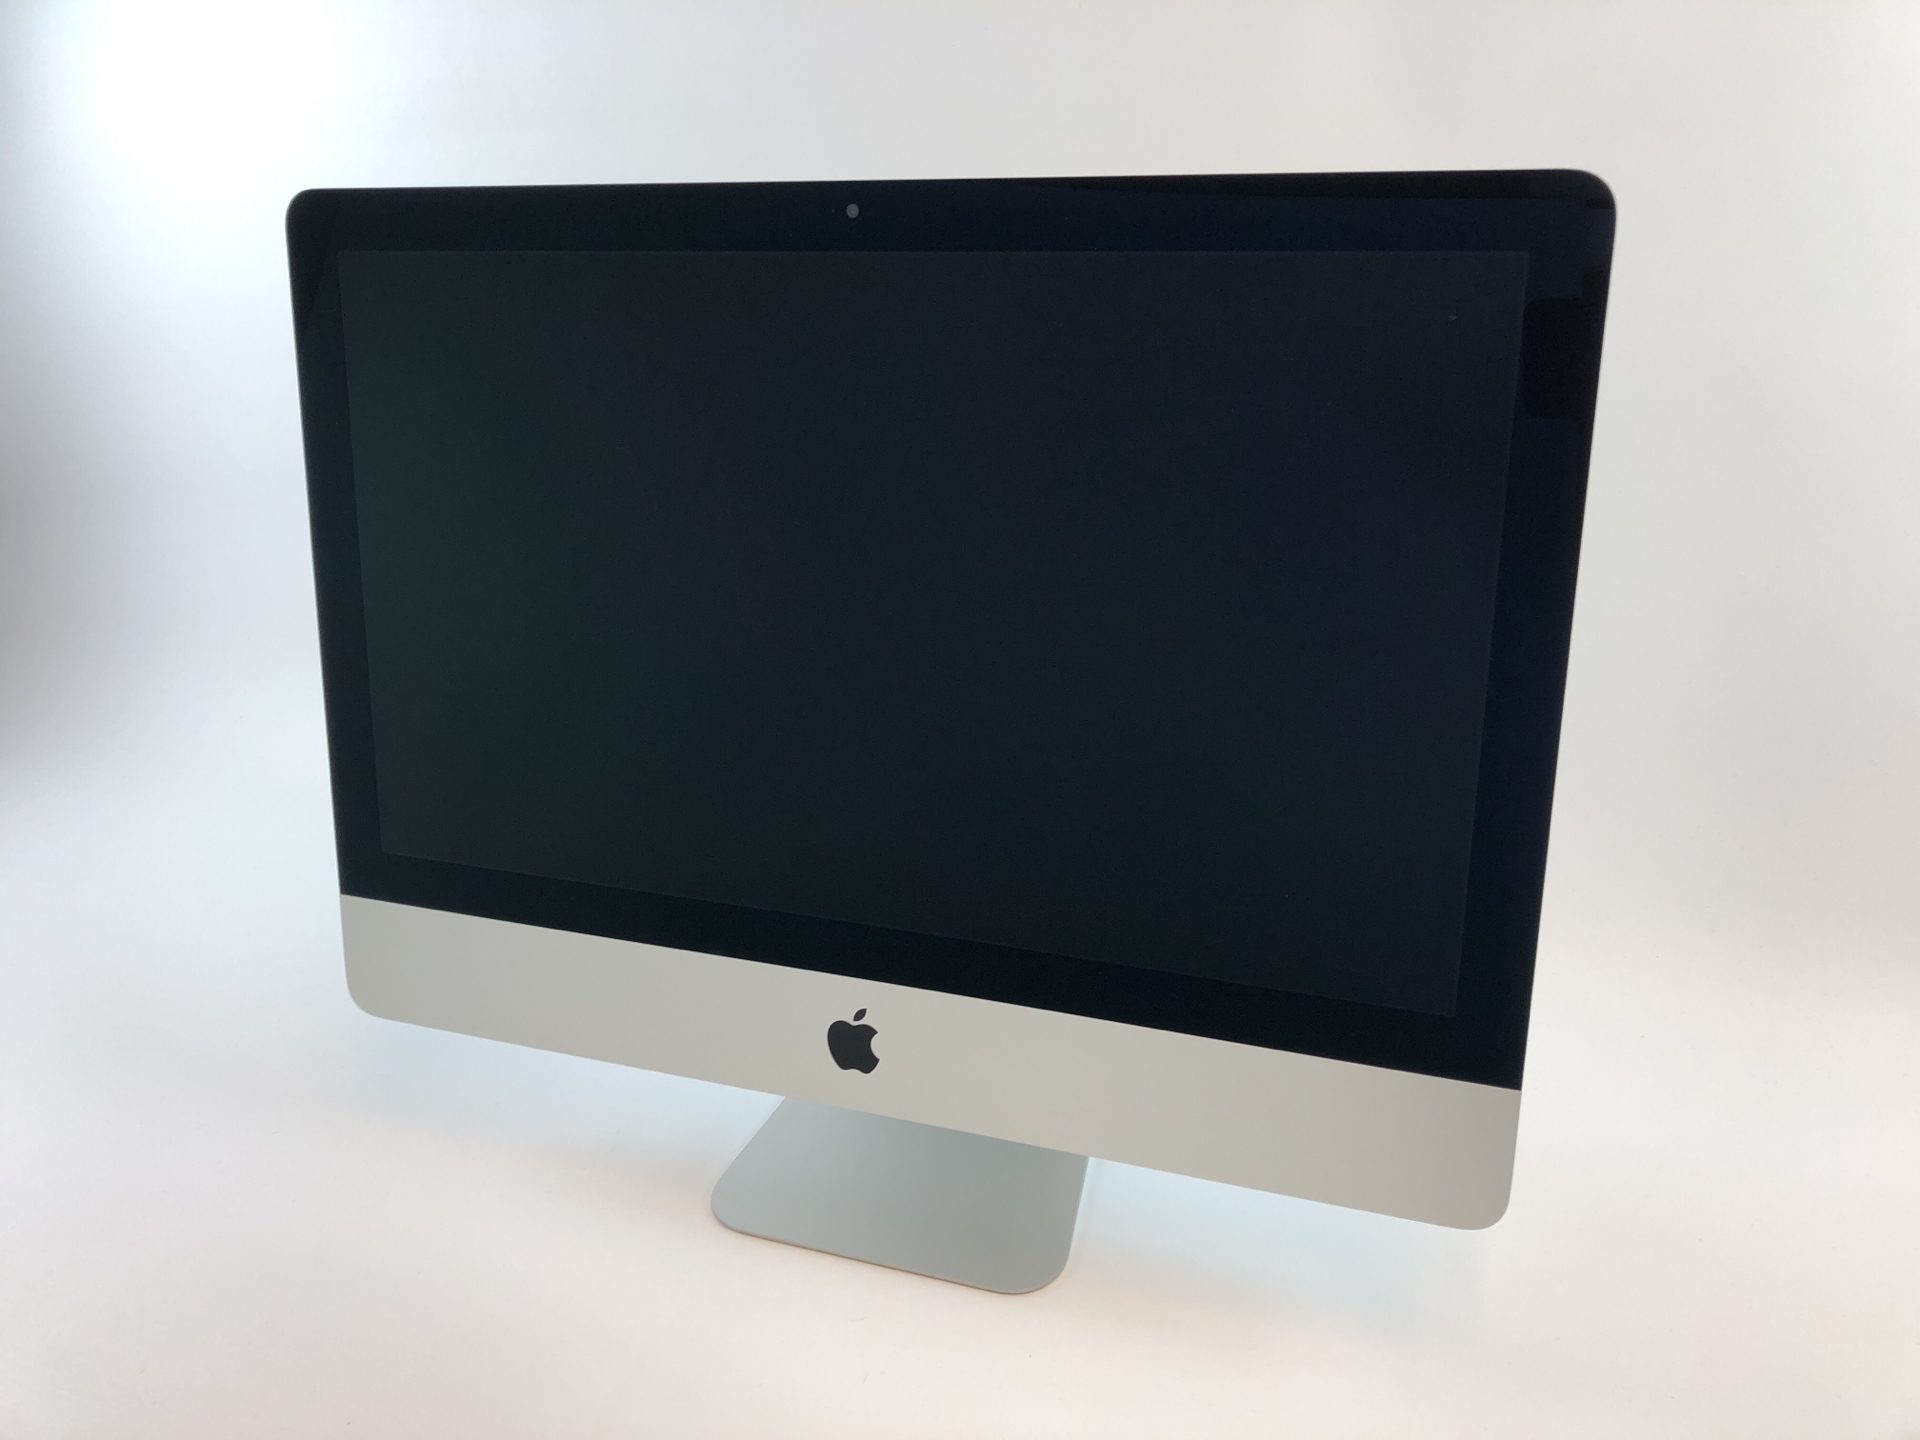 "iMac 21.5"" Late 2015 (Intel Quad-Core i5 2.8 GHz 8 GB RAM 1 TB Fusion Drive), Intel Quad-Core i5 2.8 GHz, 8 GB RAM, 1 TB Fusion Drive, Afbeelding 1"